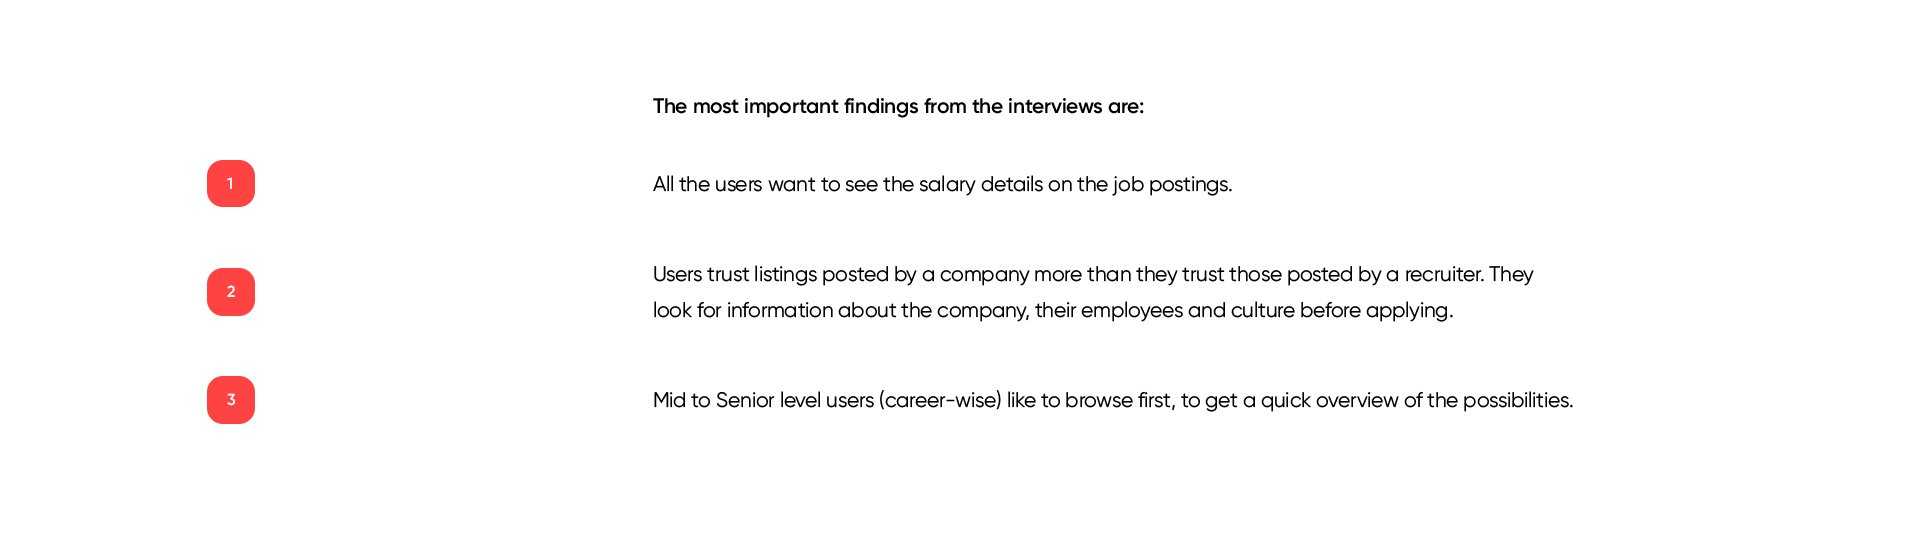 Key insights from our interviews for the job finder app.